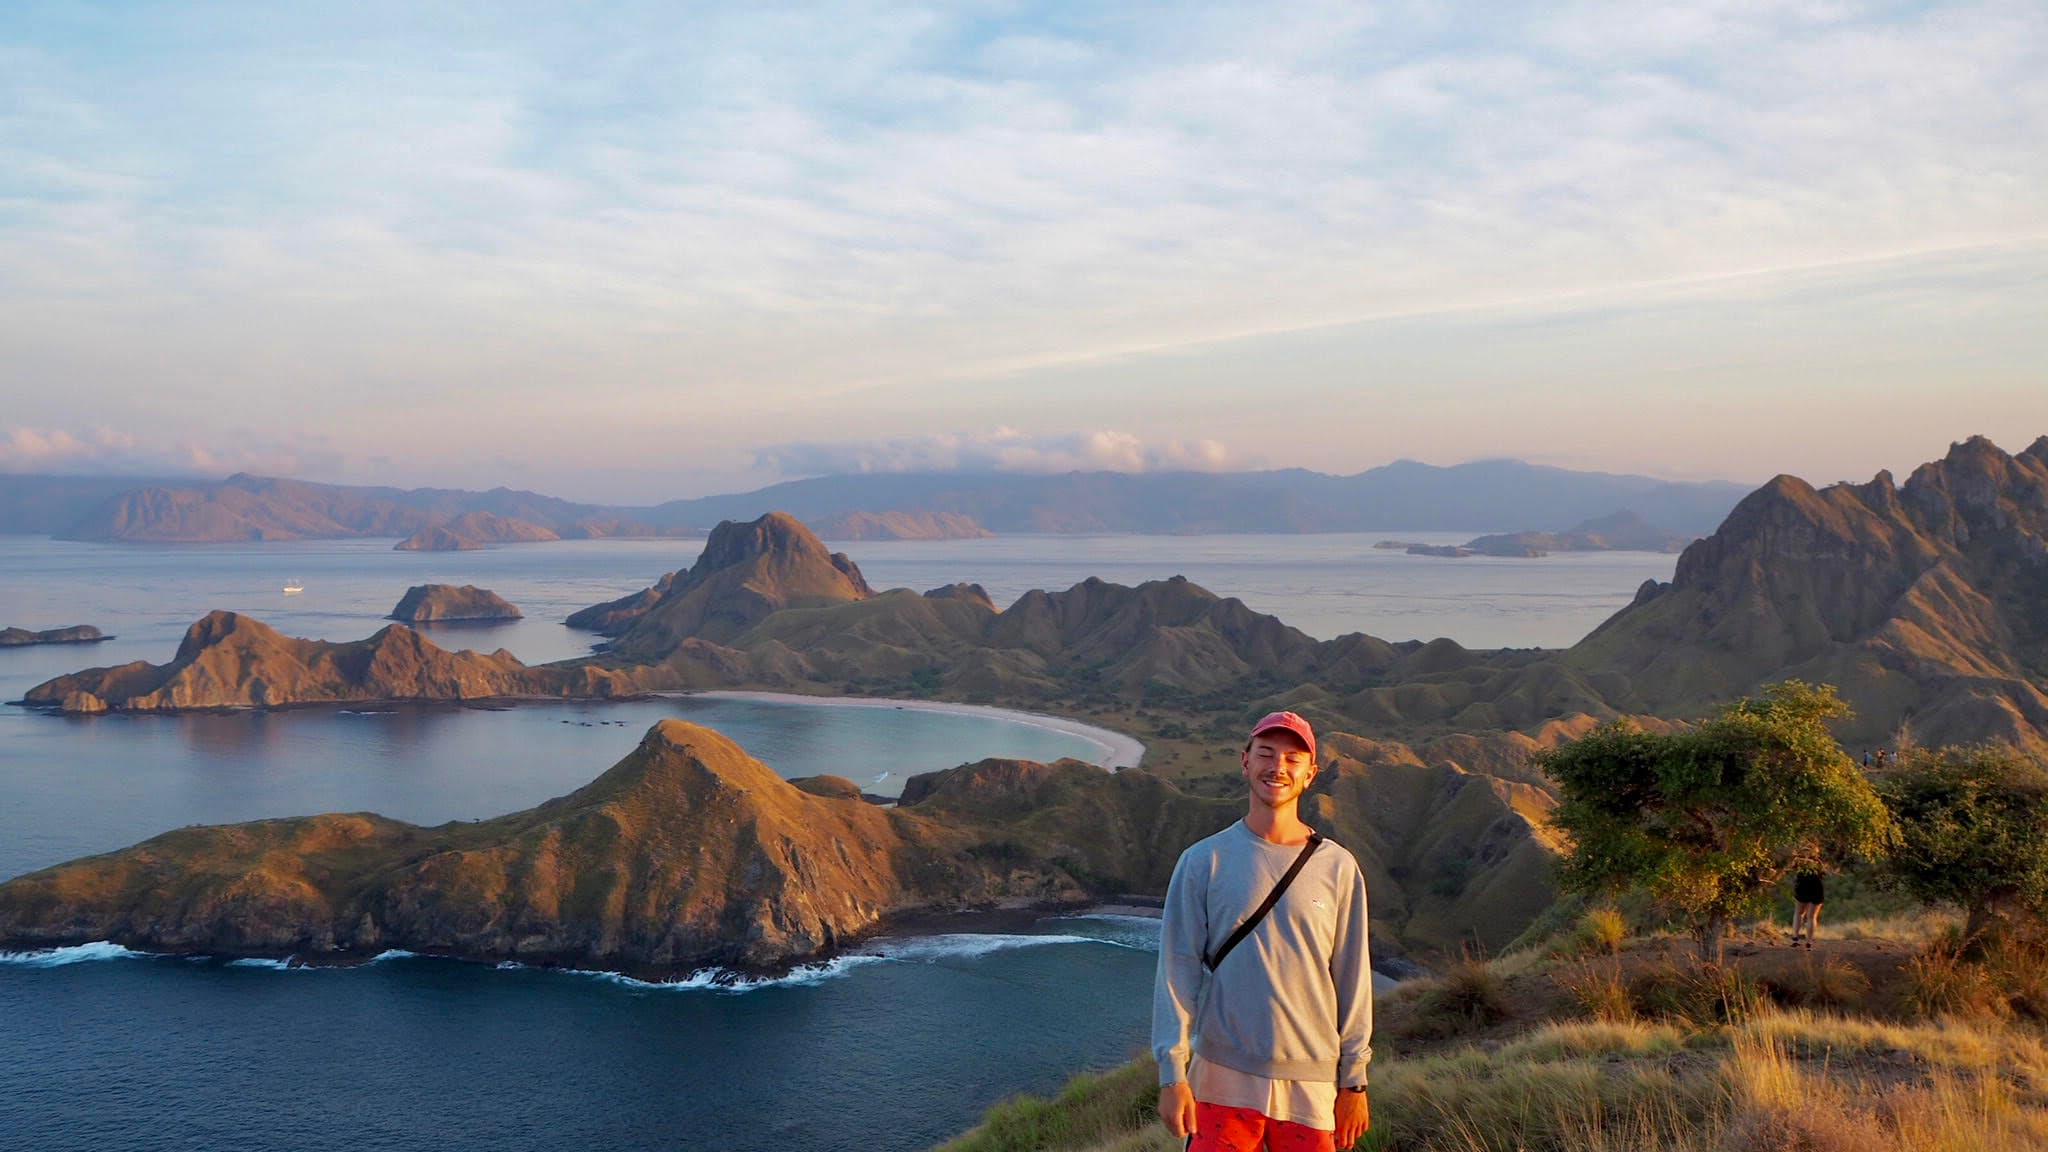 A DAYMADE winner stood in front of a collection of islands protruding from the Mediterranean Sea